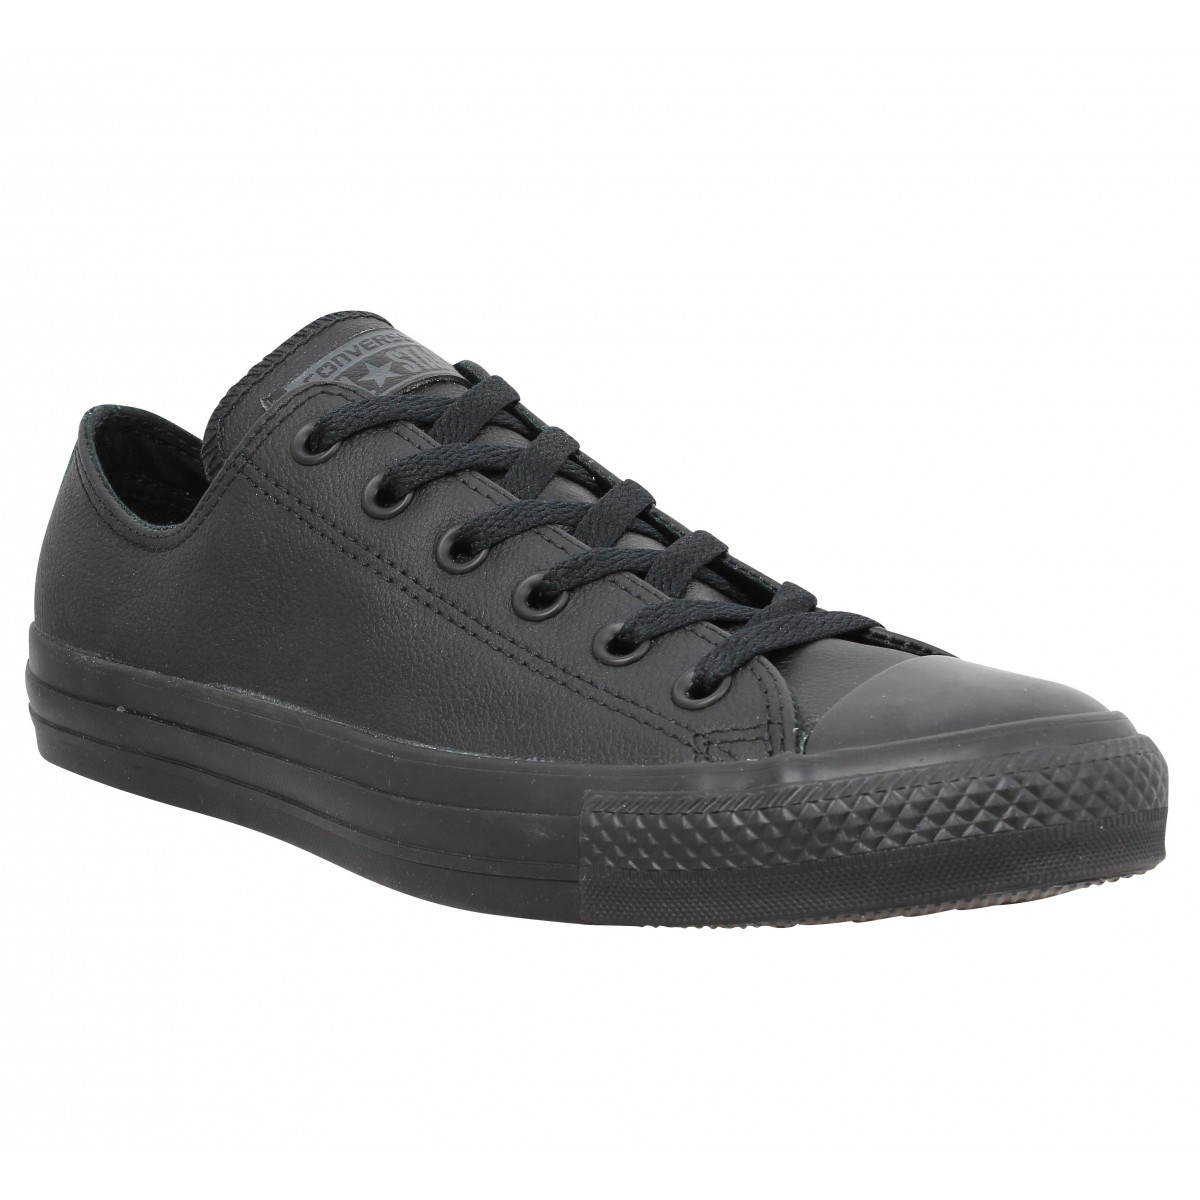 Baskets CONVERSE Chuck Taylor All Star cuir Homme Black